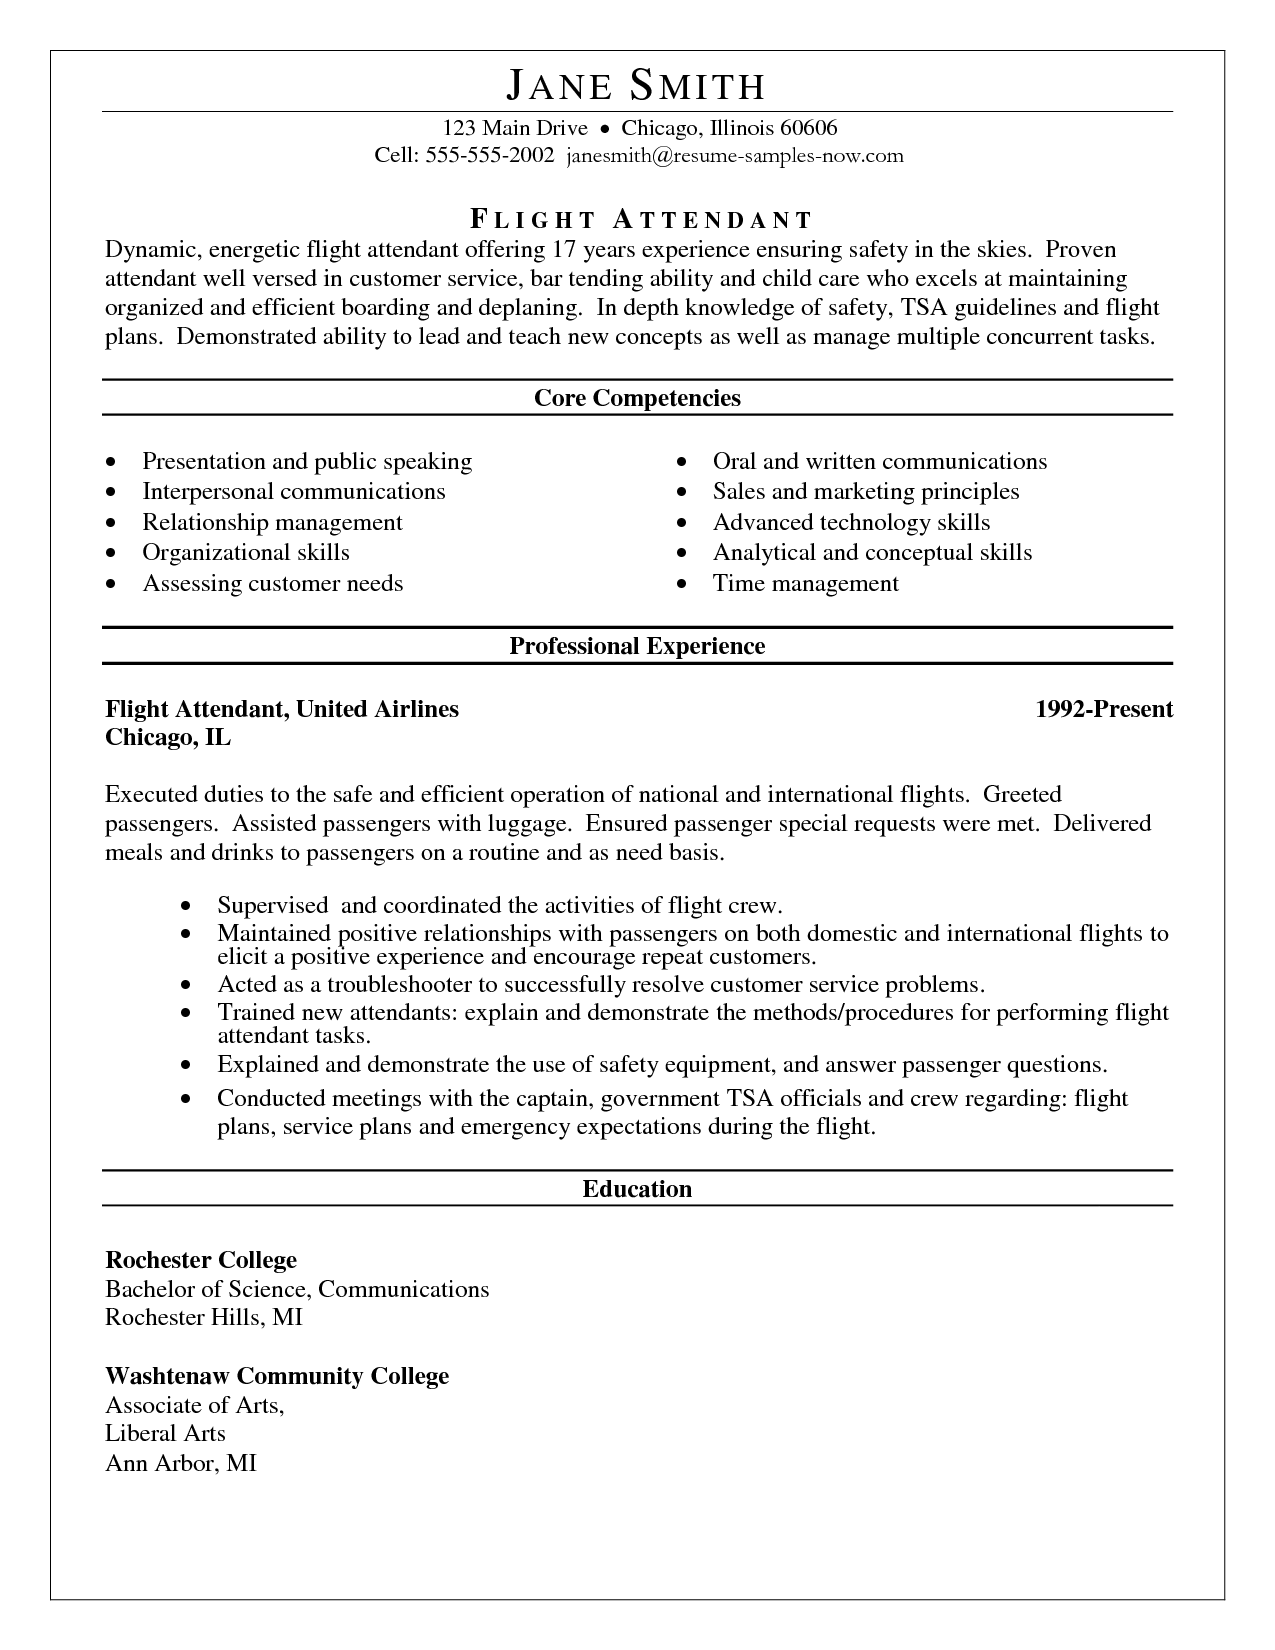 tsa resume - Dorit.mercatodos.co